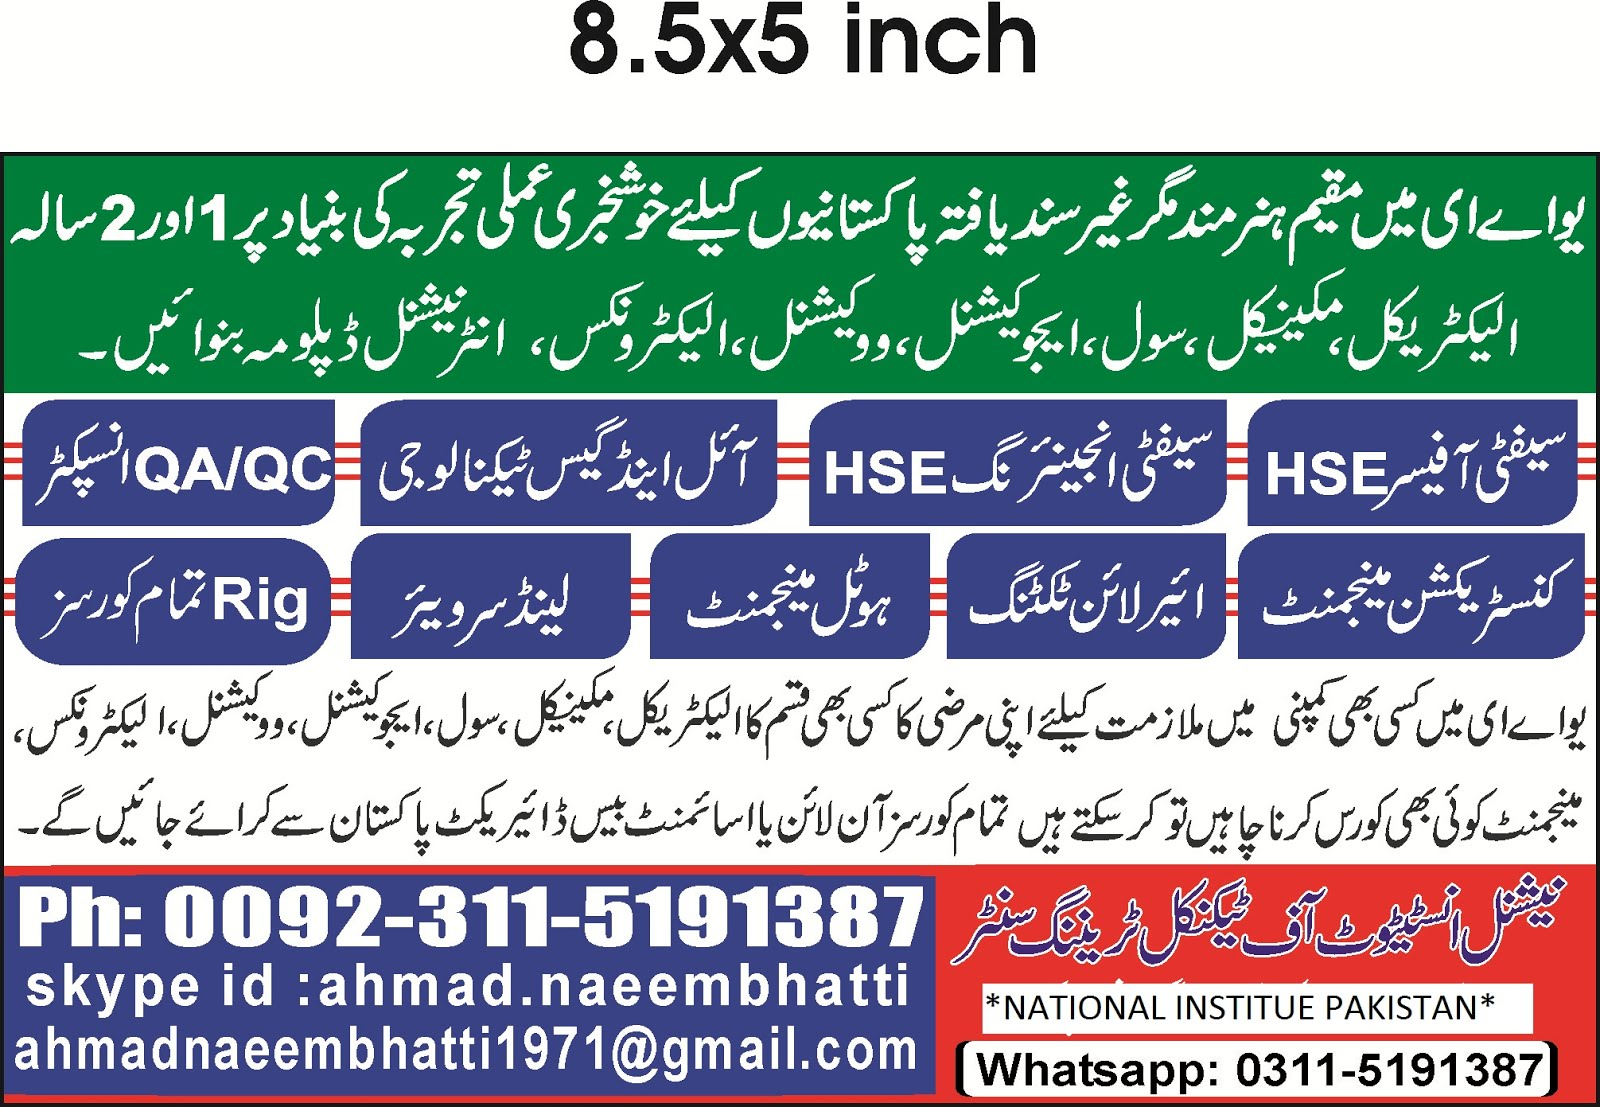 1 year diploma in Islamabad